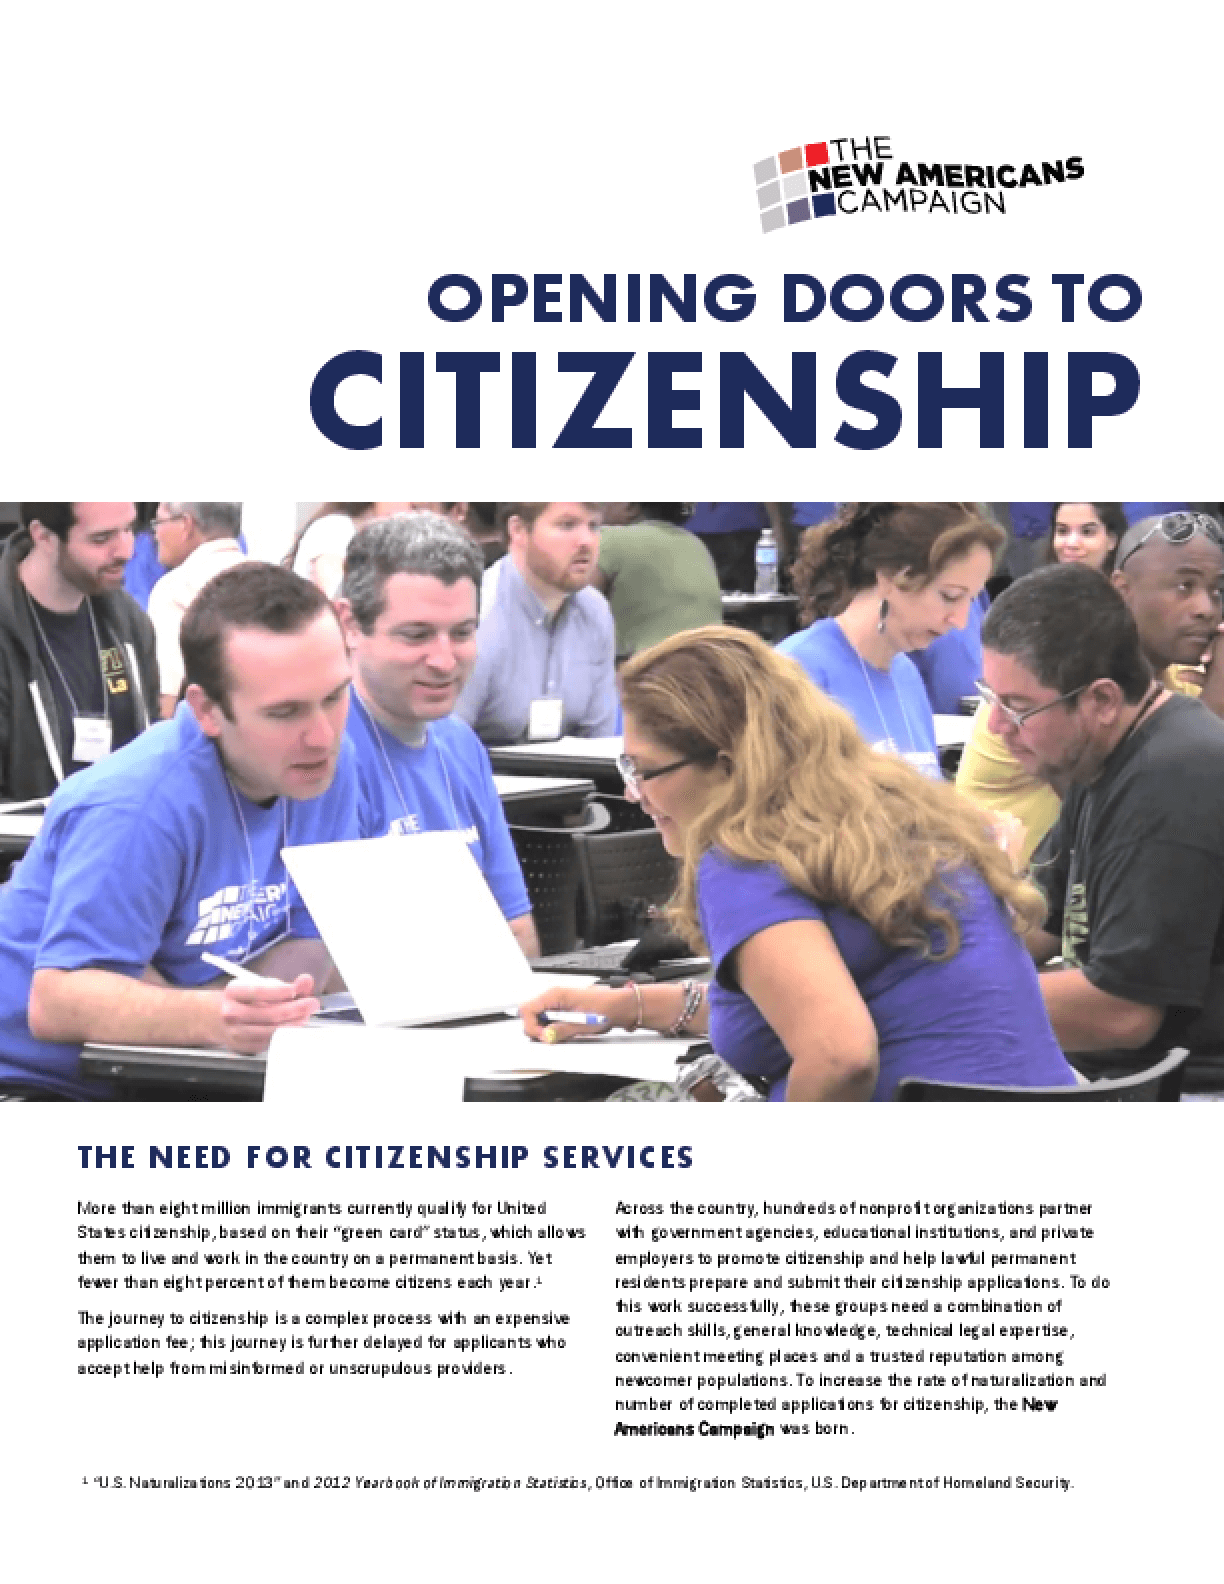 Opening Doors to Citizenship (Summary)